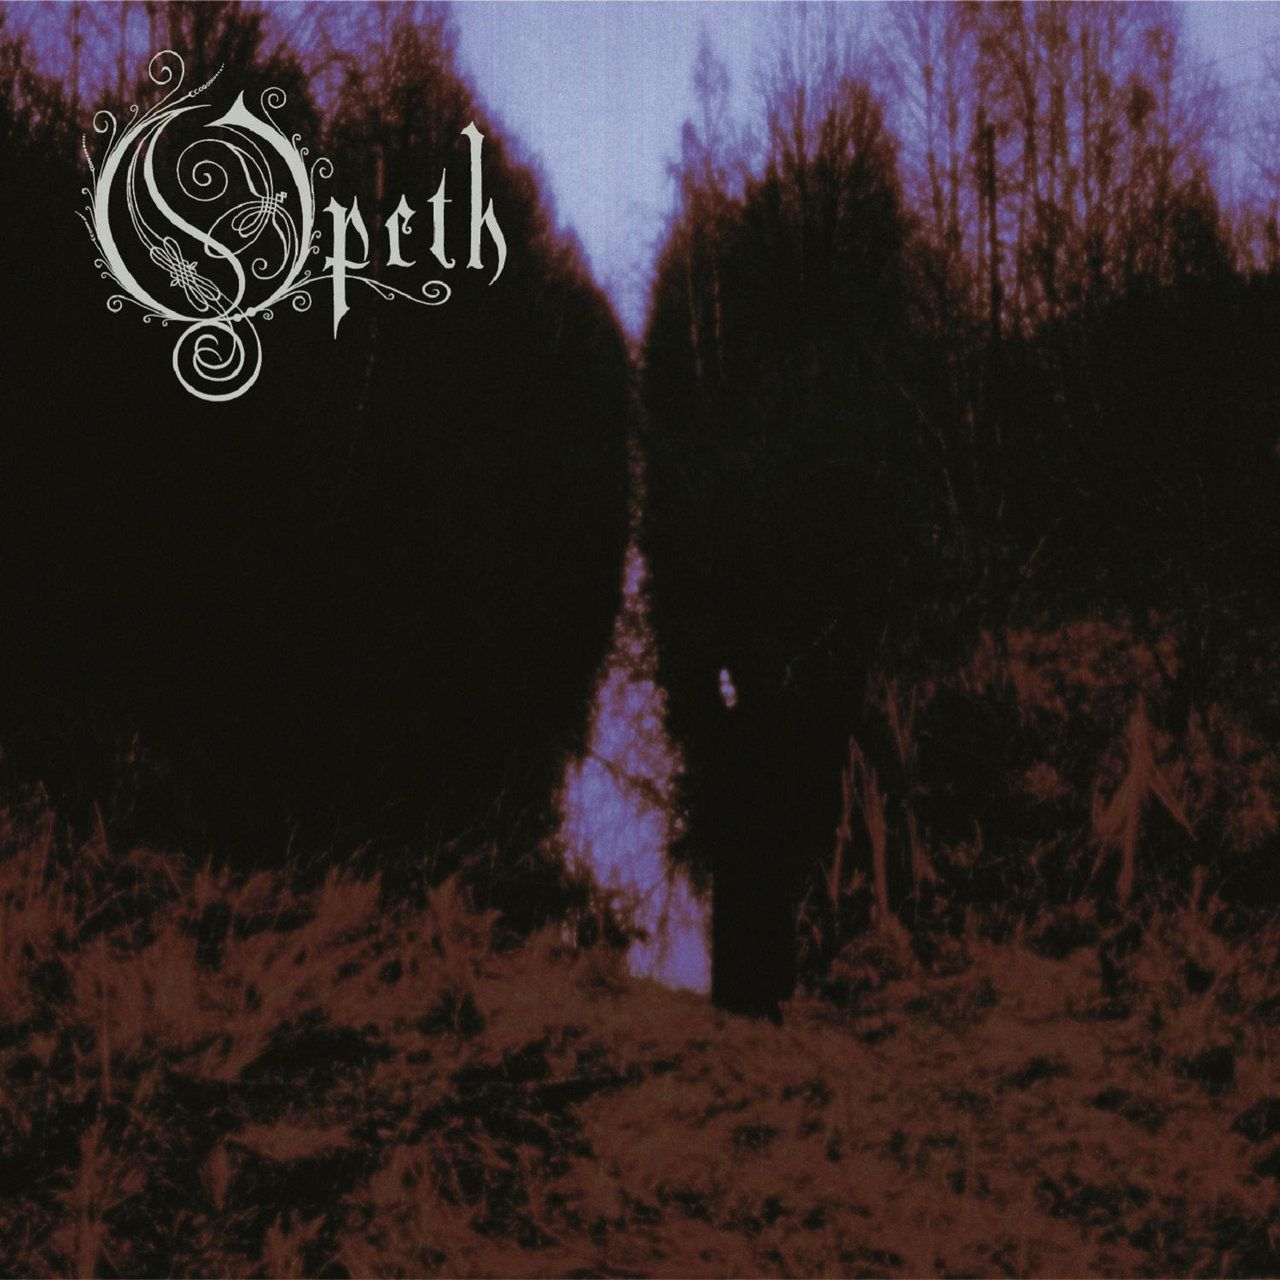 CD review OPETH &quot&#x3B;Orchid&quot&#x3B;, Morningrise&quot&#x3B; and &quot&#x3B;My Arms Your Hearse&quot&#x3B; - reissues